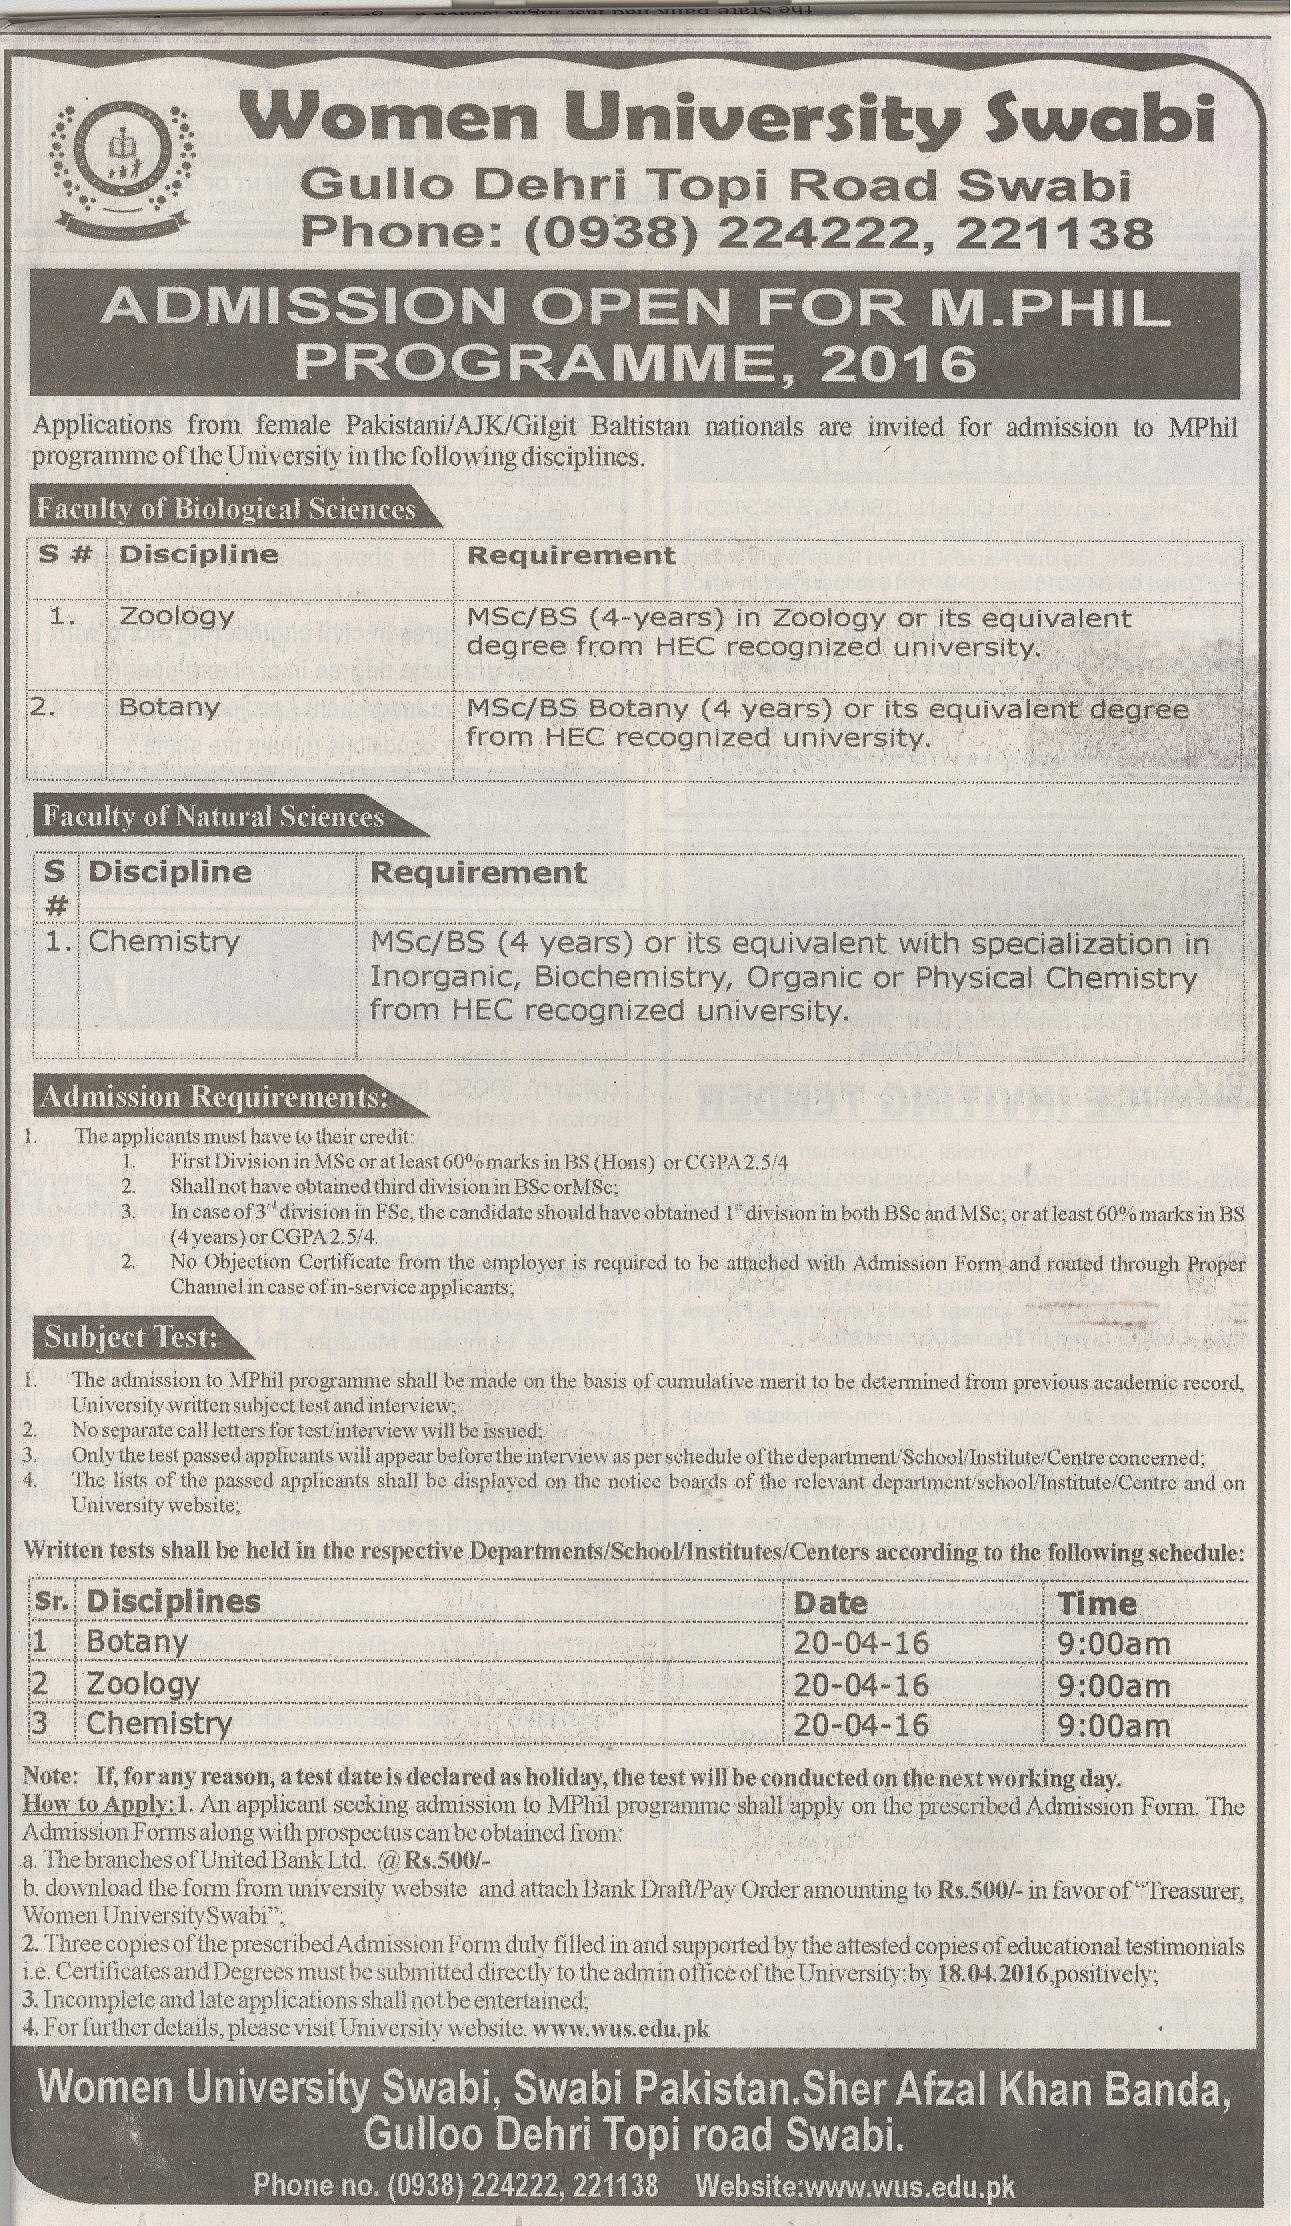 Women University Swabi Admission 2016